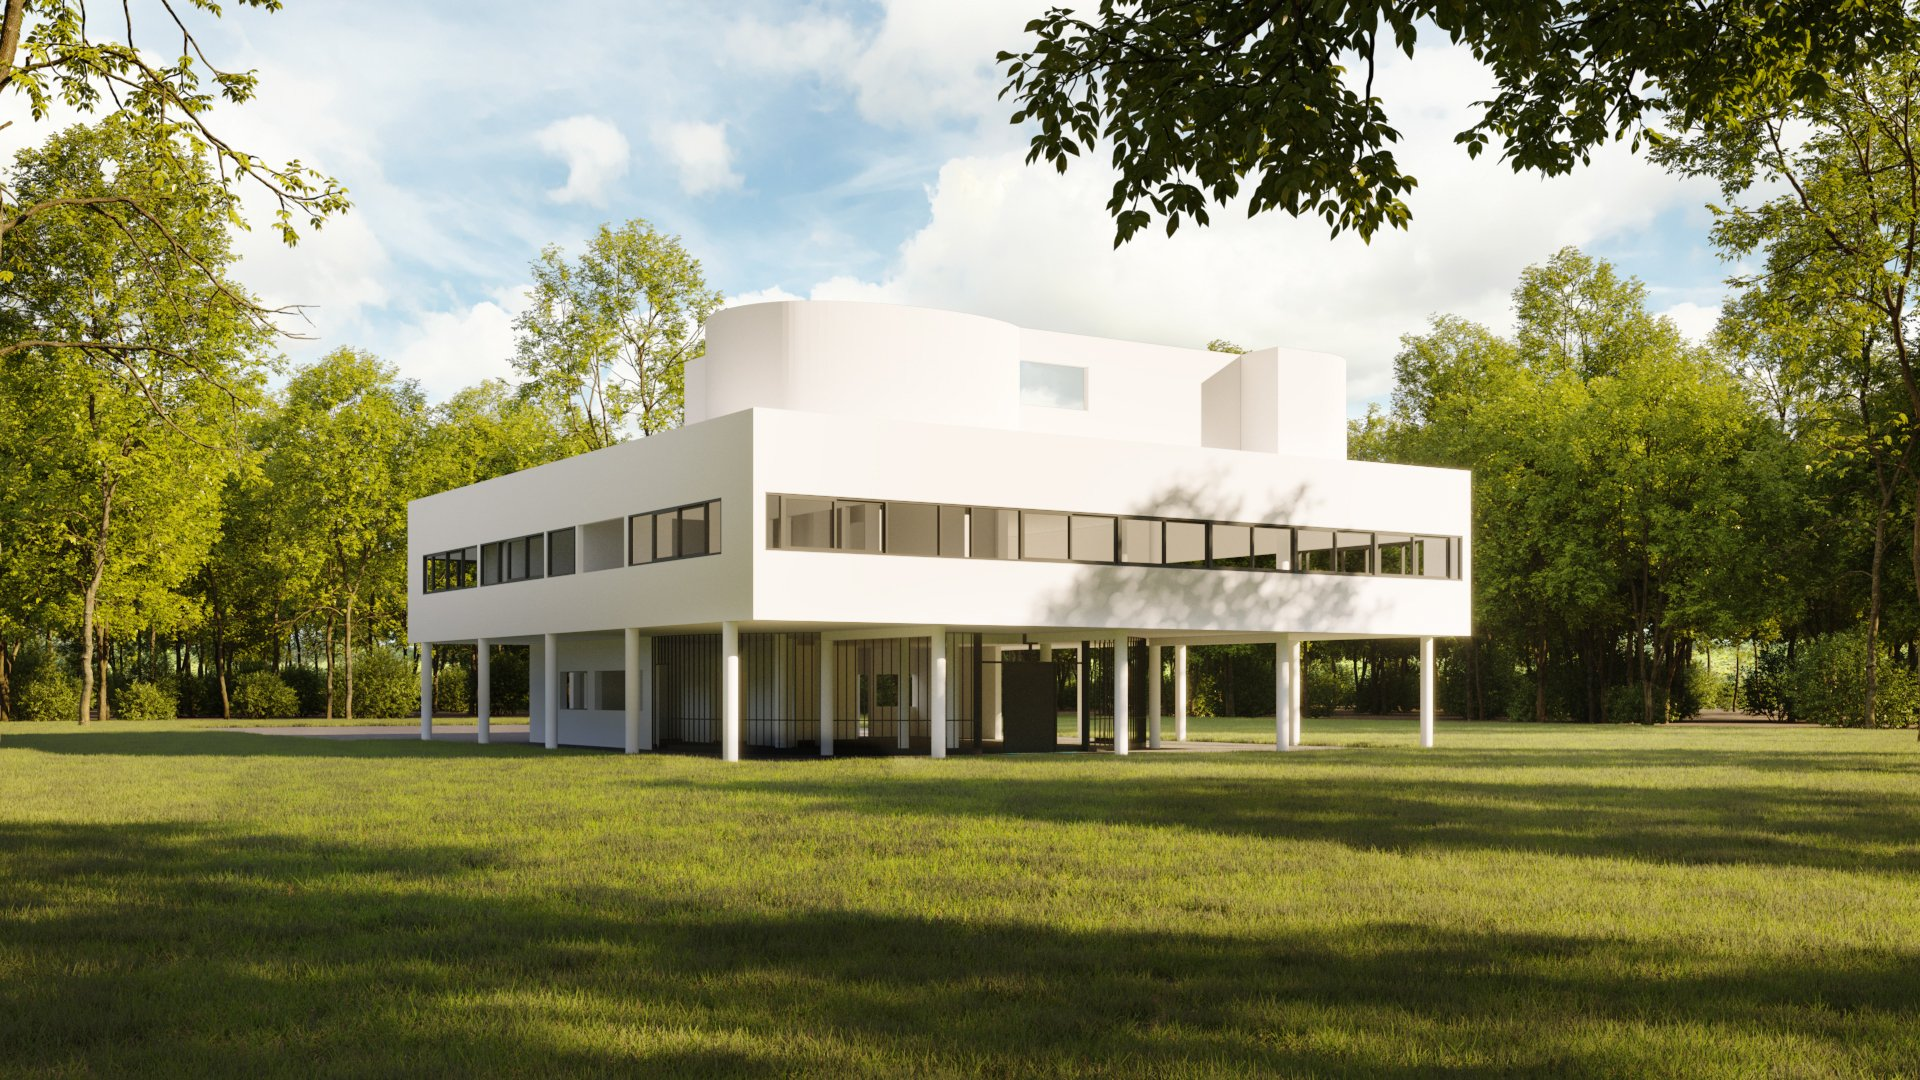 Exterior 3D Architectural Visualization of a Building in Daytime